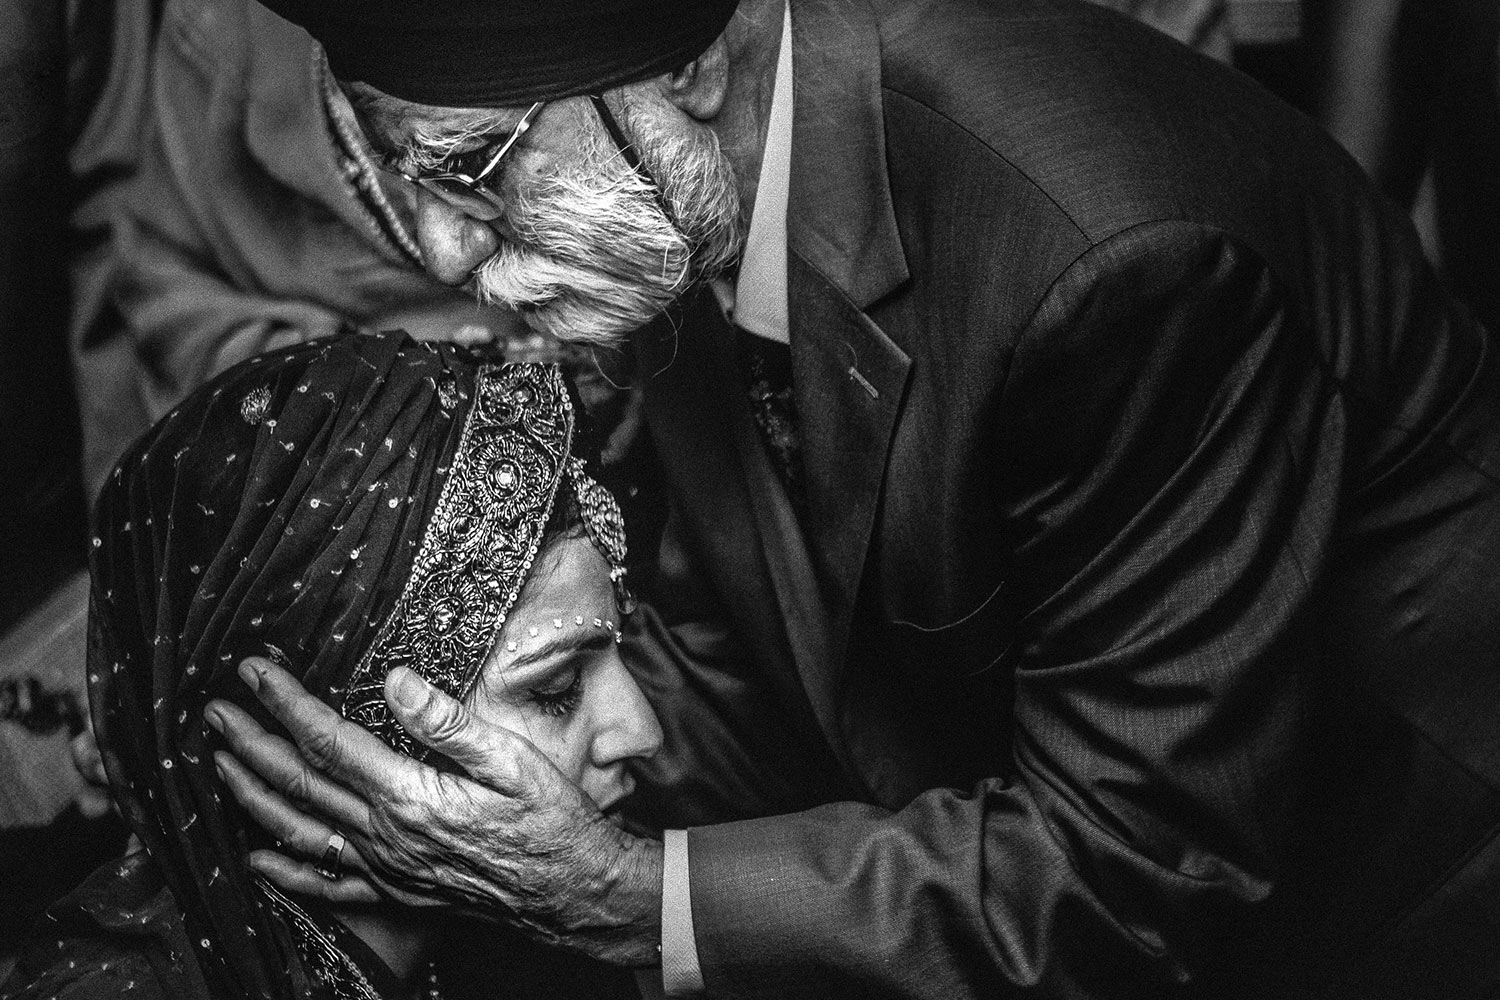 Sikh dad embracing bride, by Callaway Gable